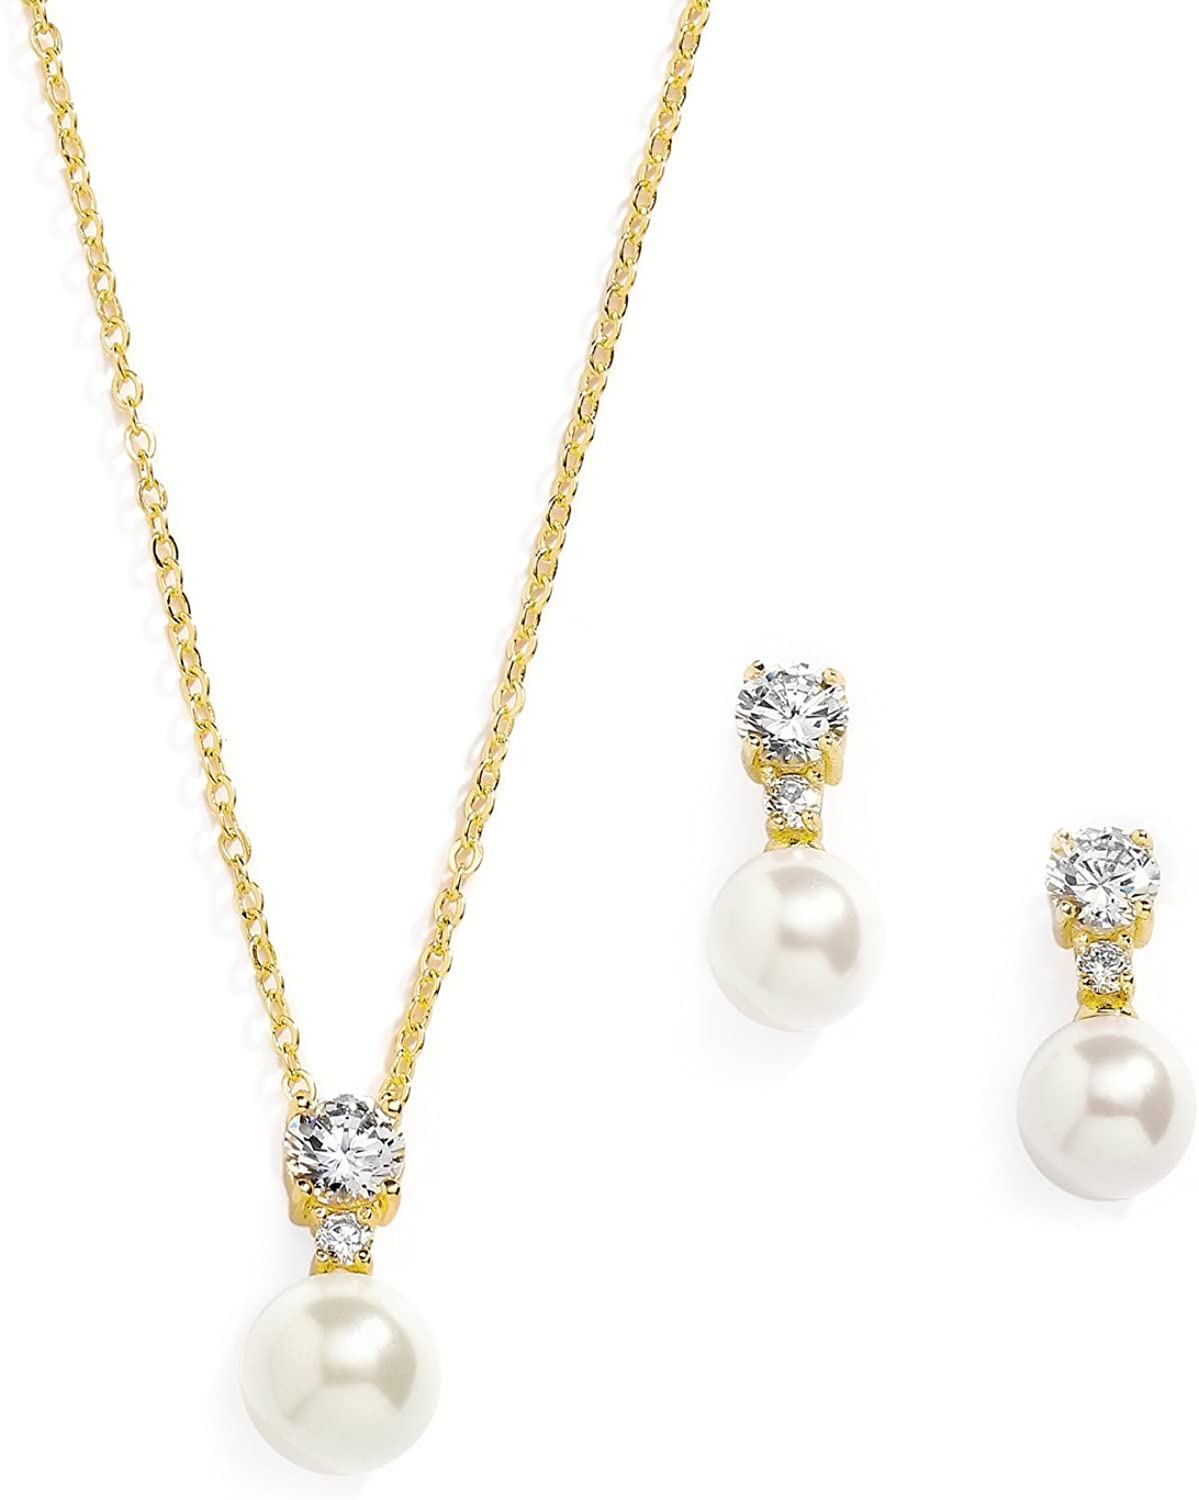 Mariell Gold CZ & Ivory Pearl Wedding Necklace and Earrings Jewelry Set for Bridesmaids & Brides